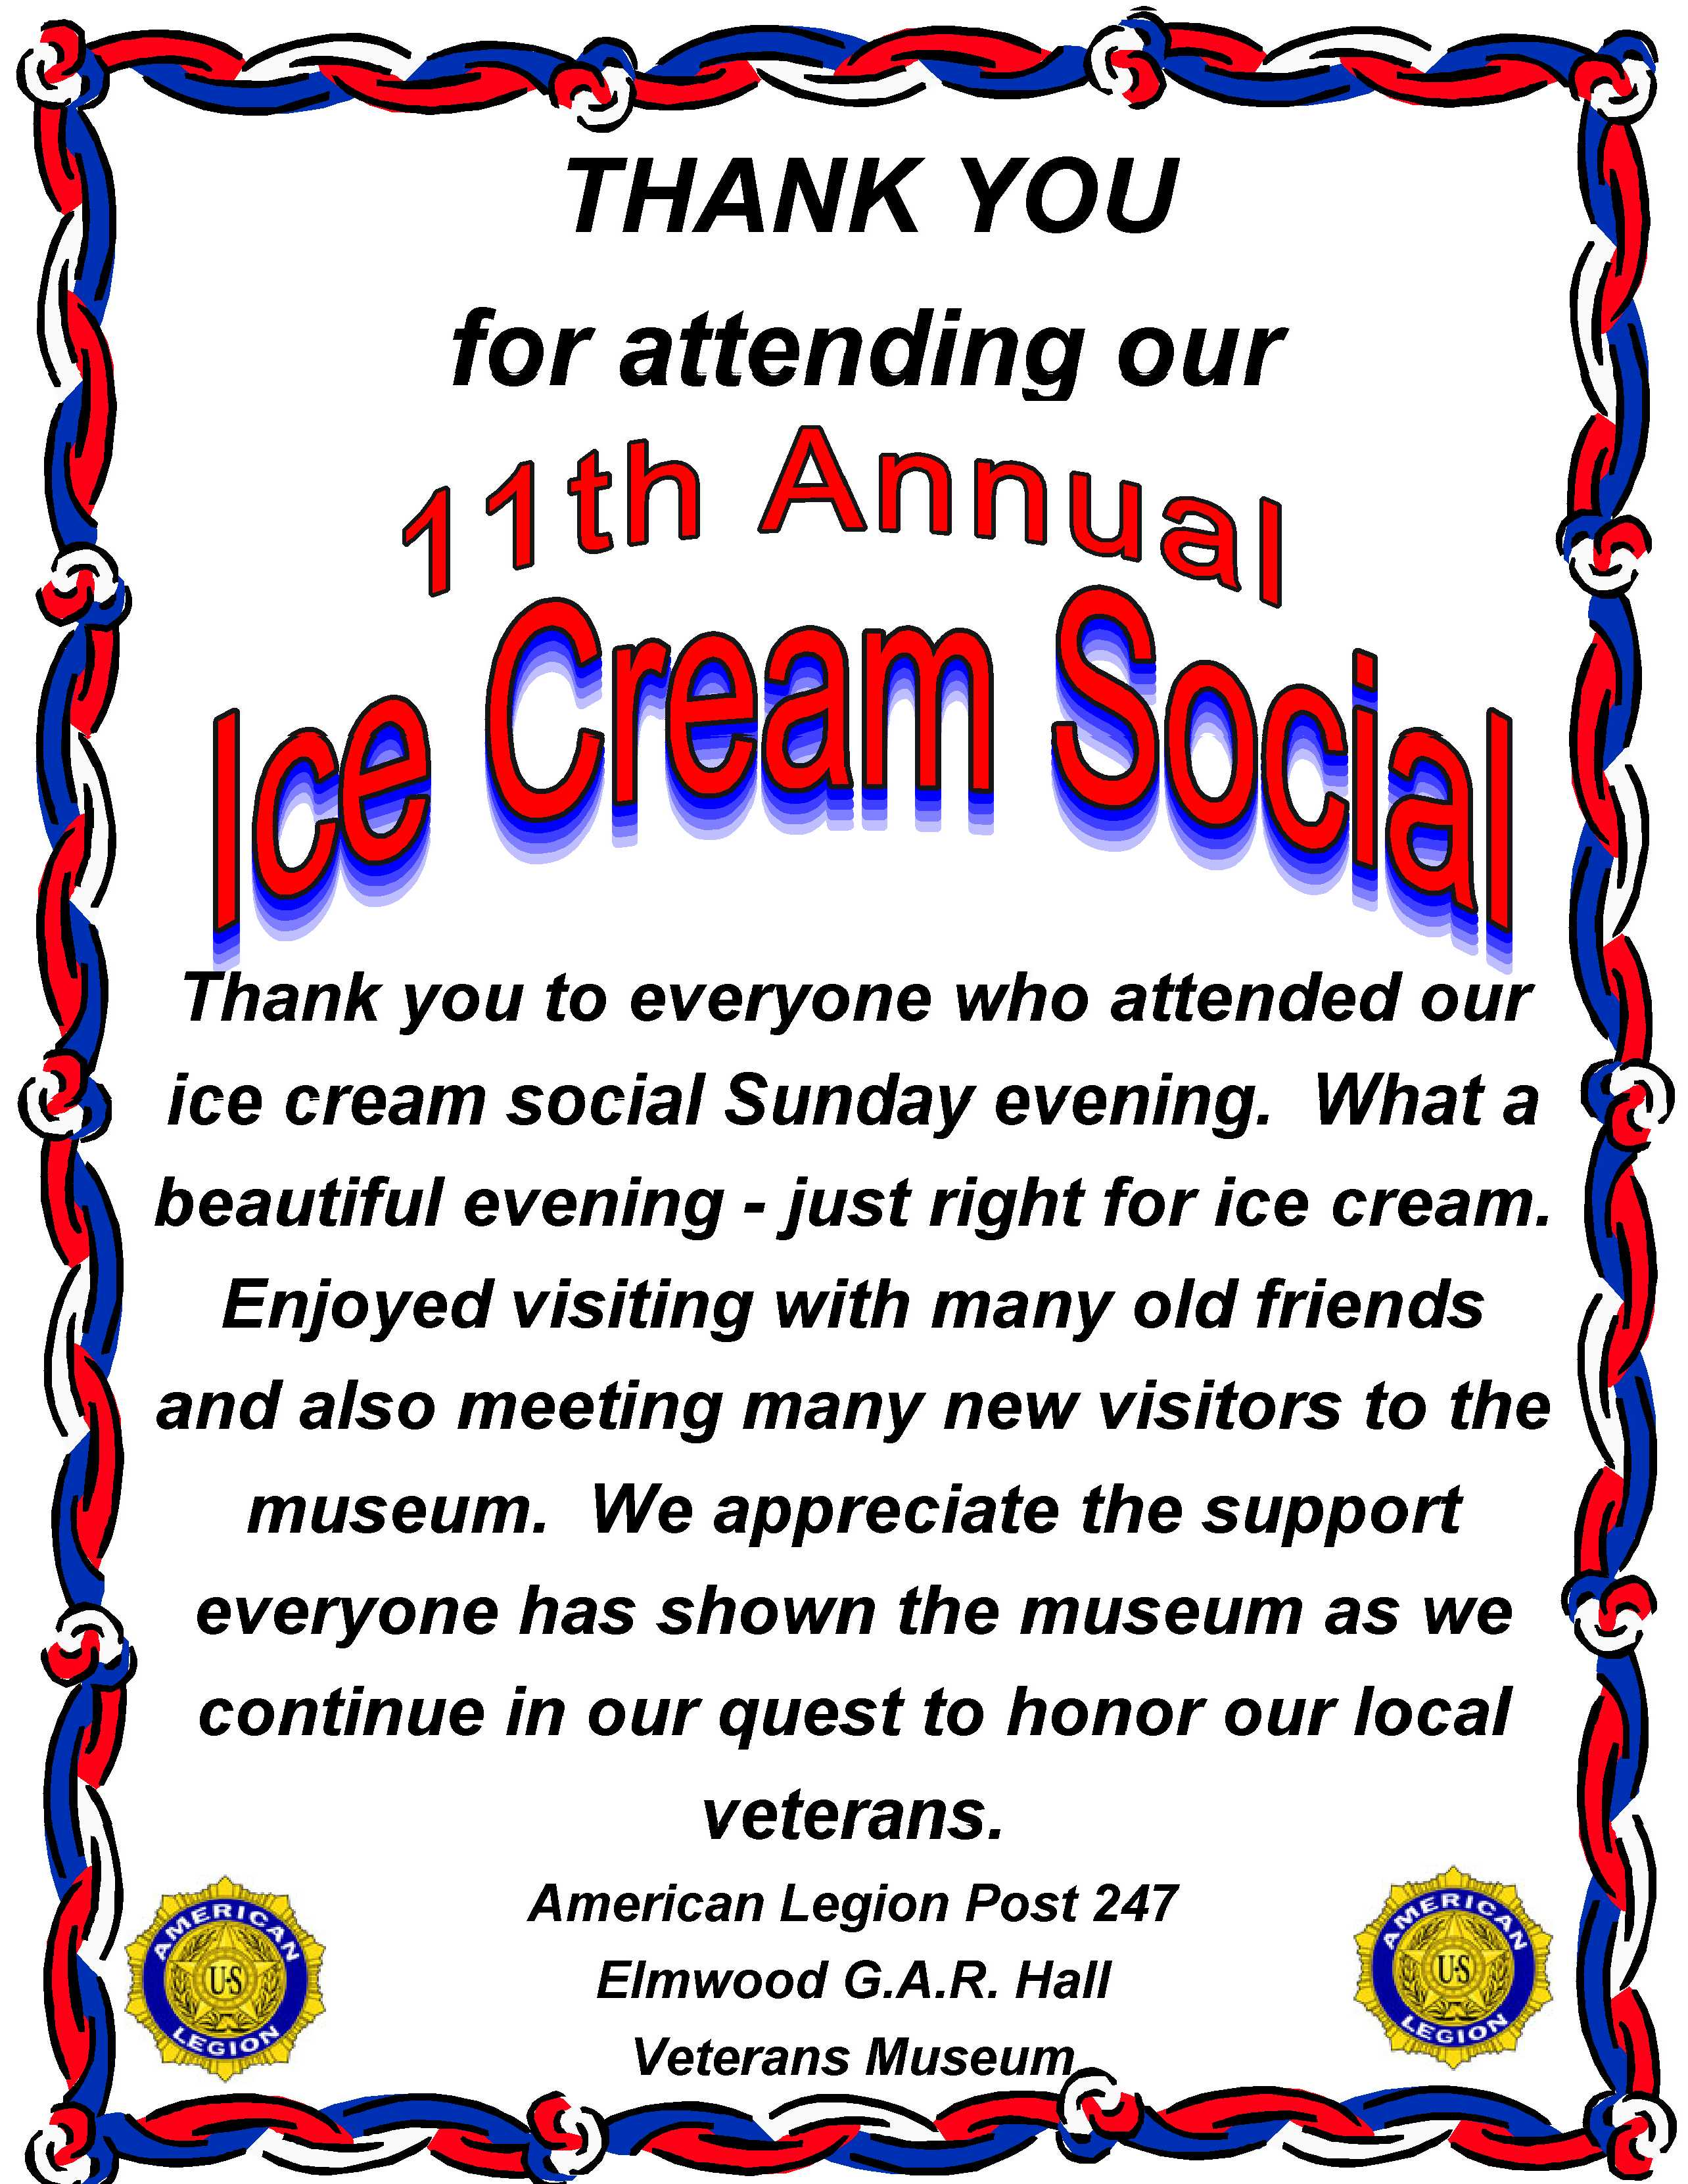 2014 Ice Cream Social Thank You